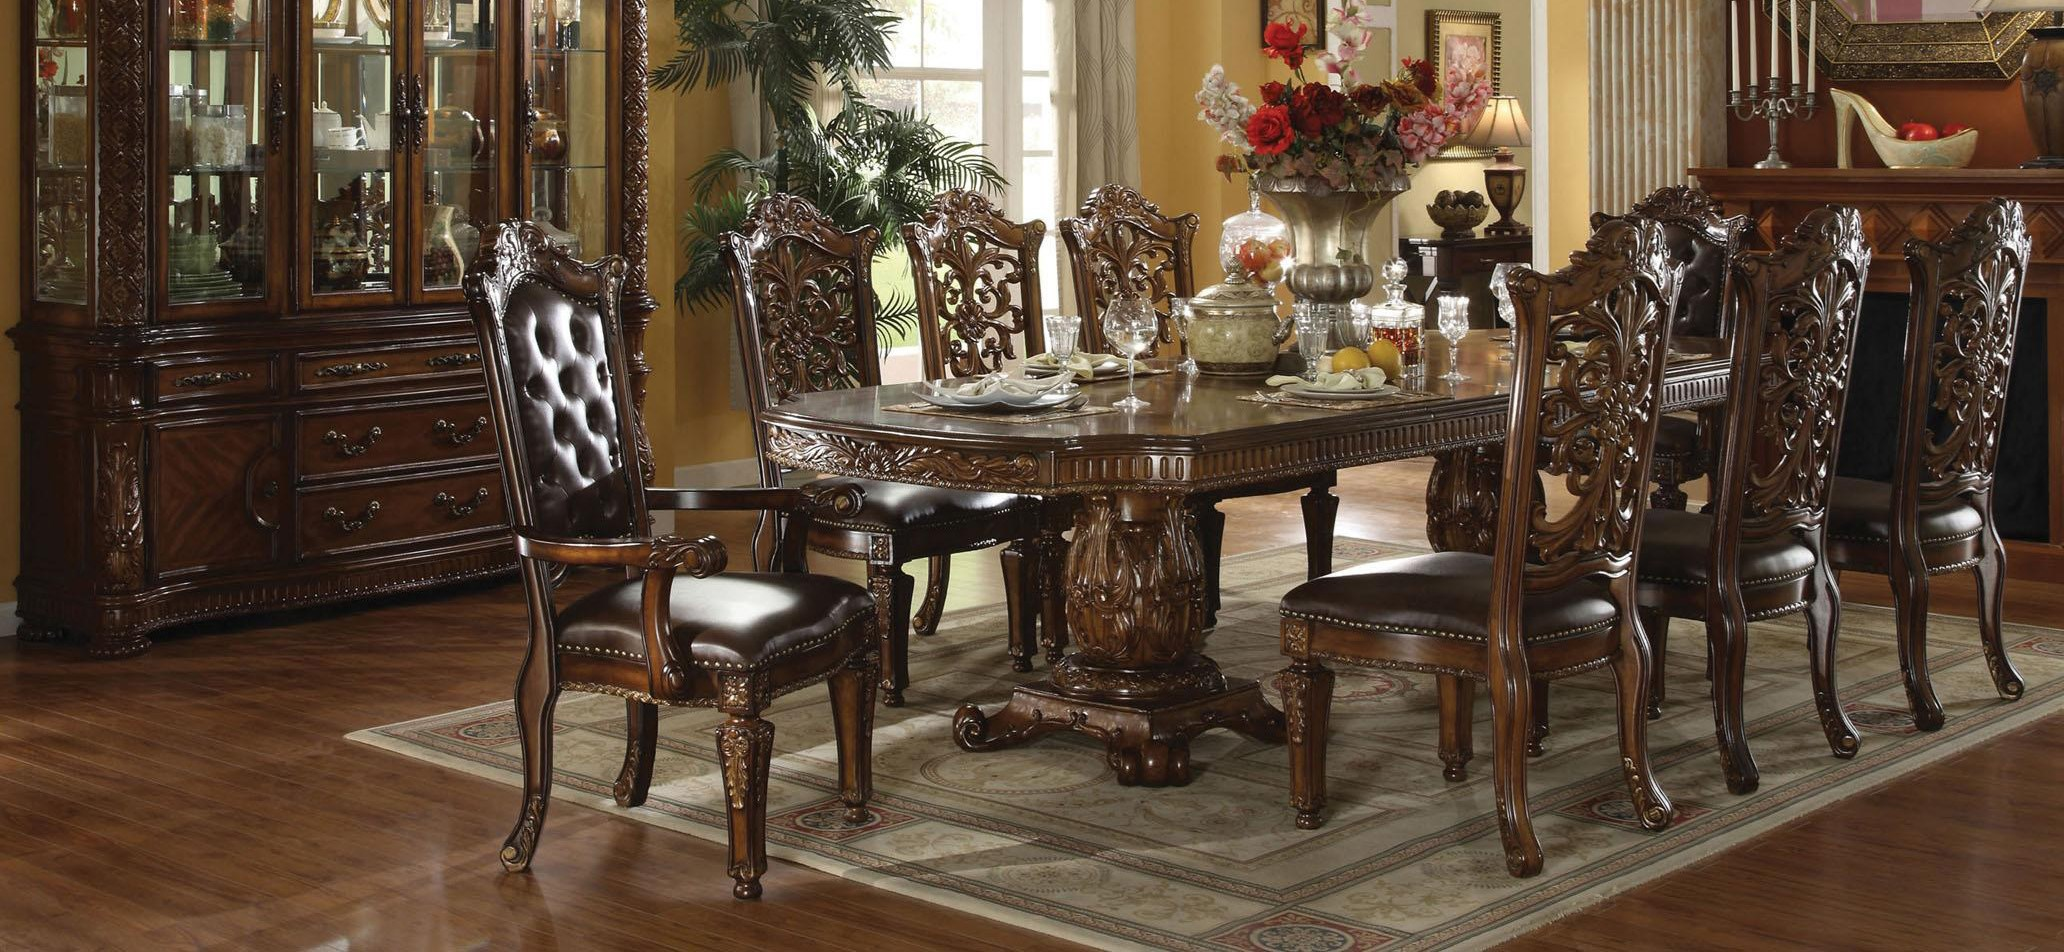 Del Sol Dining Room Table And Chair Sets